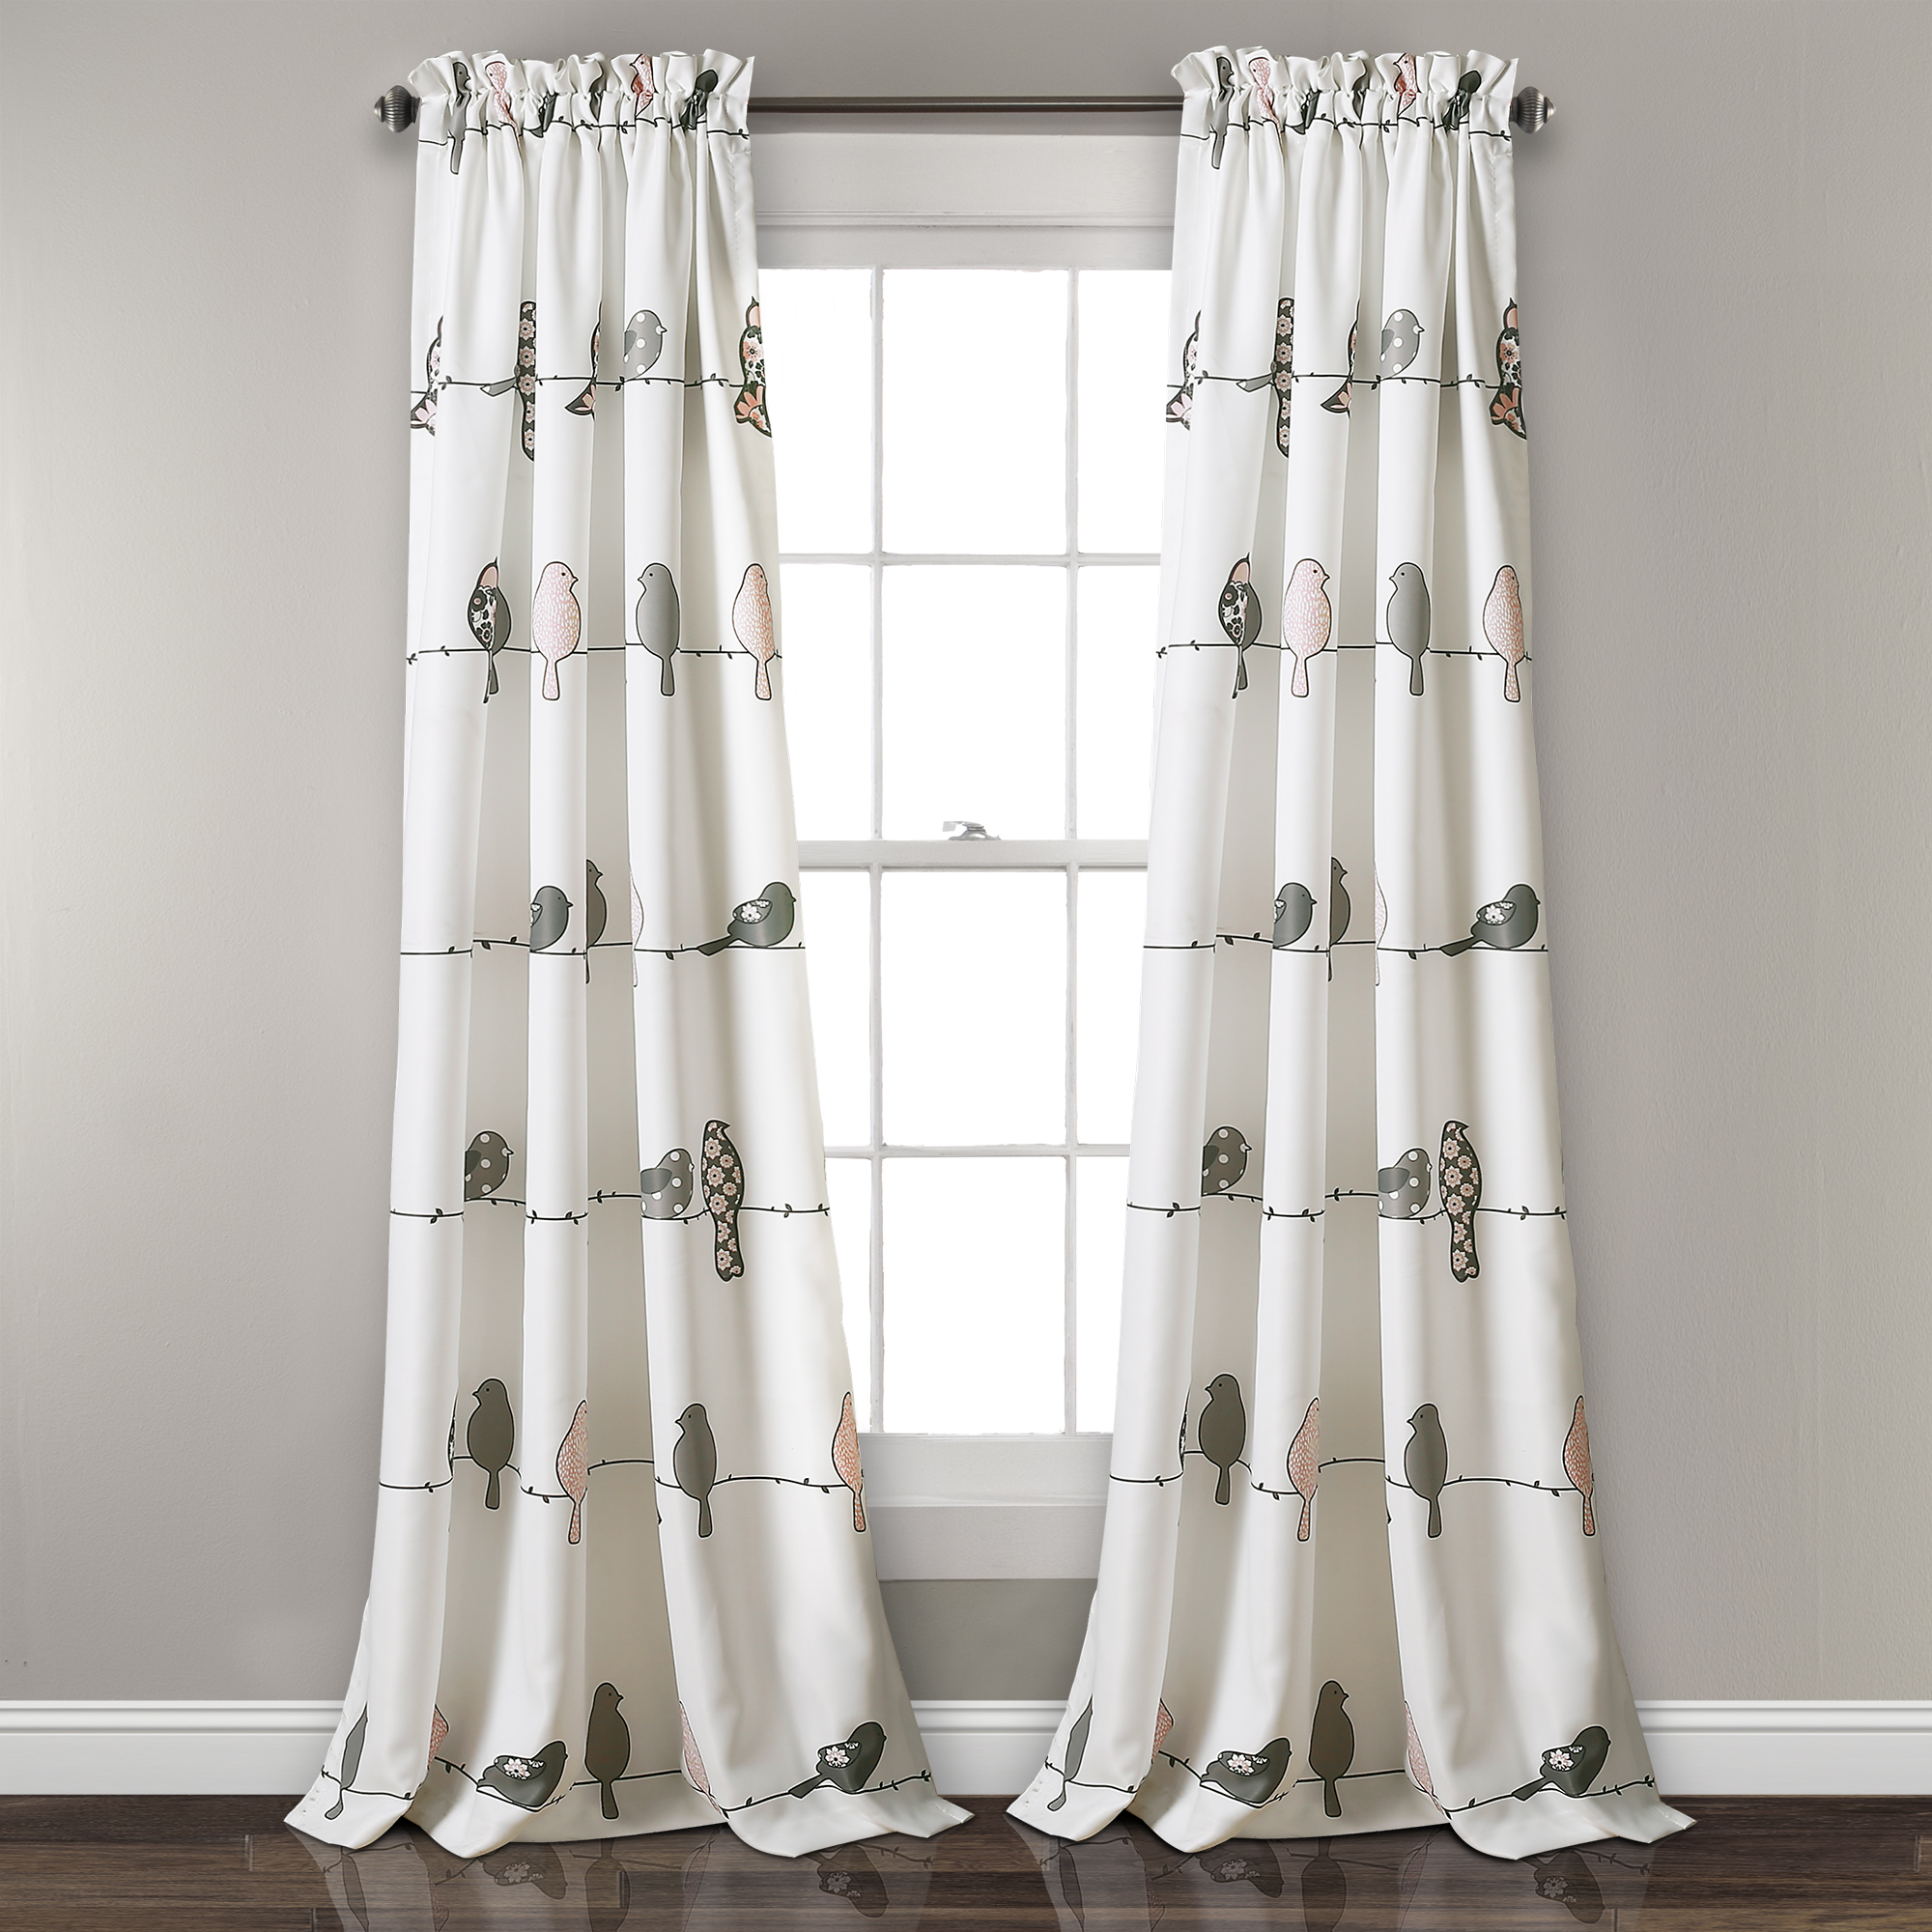 Current Details About Rowley Birds Room Darkening Window Curtain Panels Blush/gray Set 52x84+2 With Rowley Birds Room Darkening Curtain Panel Pairs (View 13 of 20)